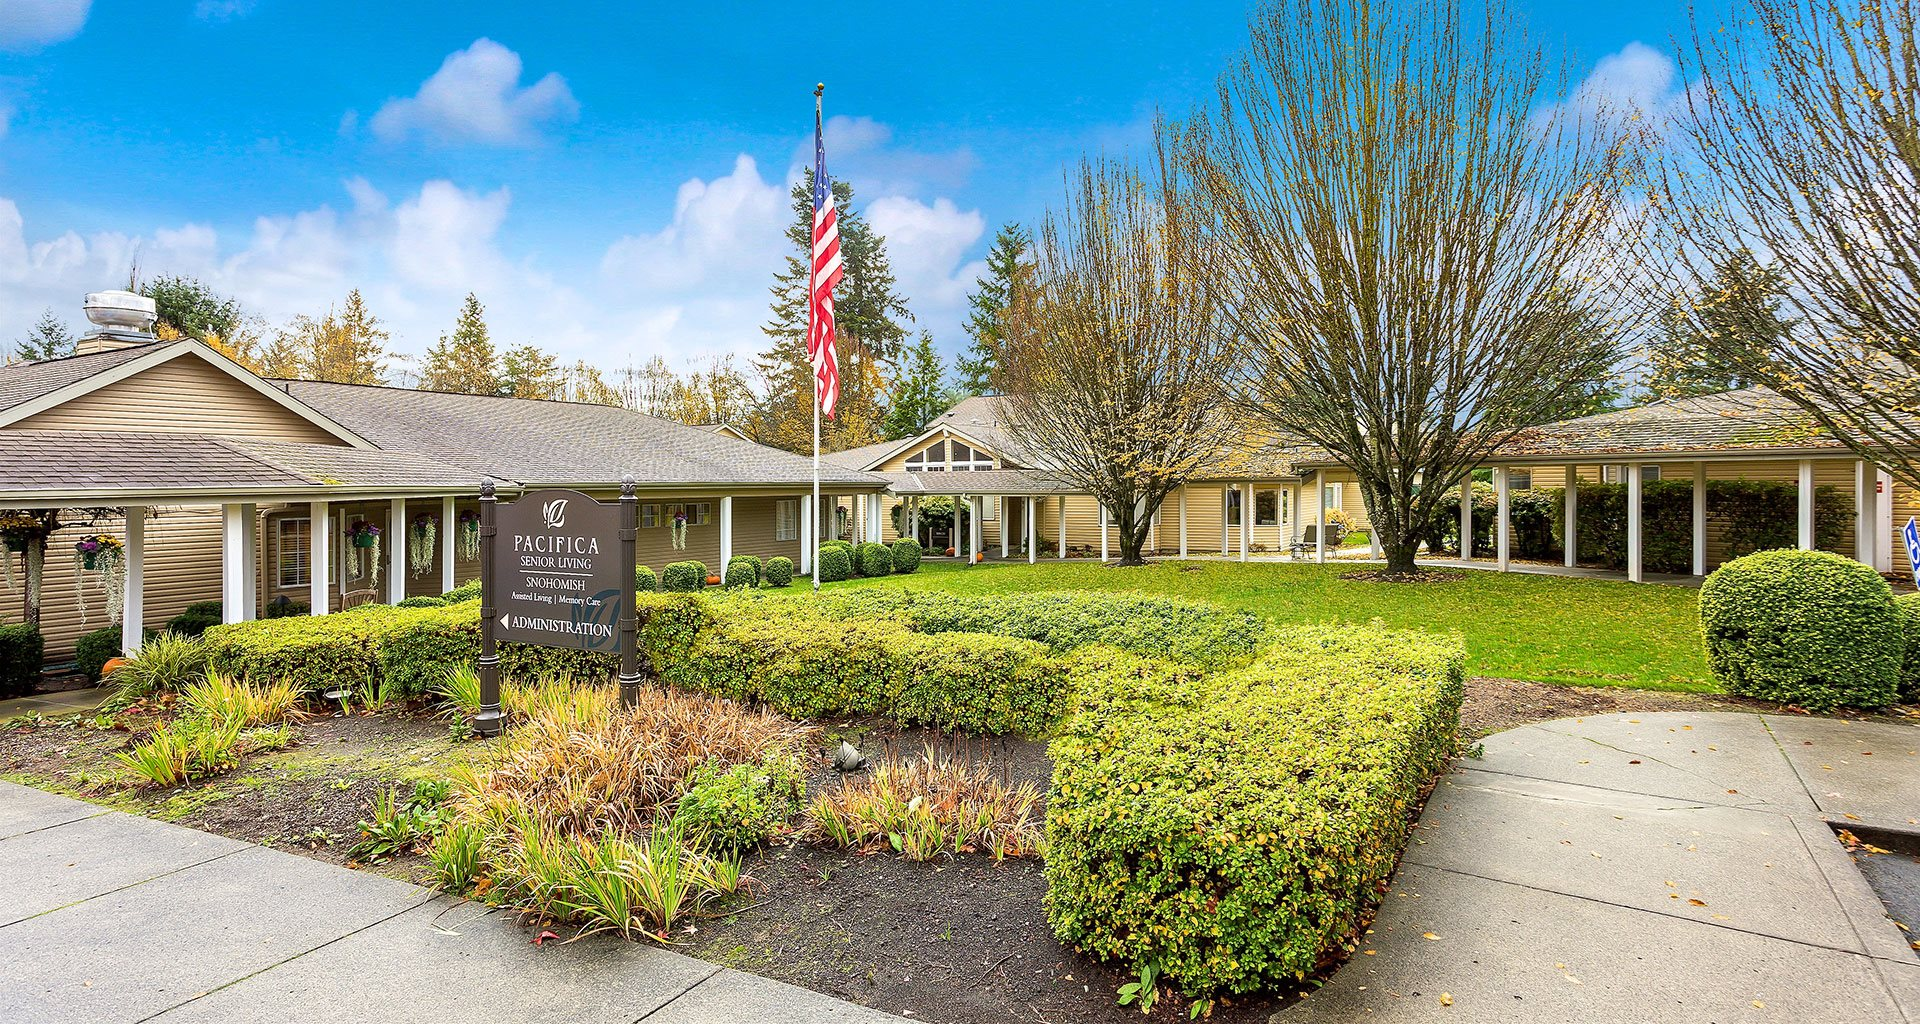 Courtyard With Mature Trees at Pacifica Senior Living Snohomish, Washington